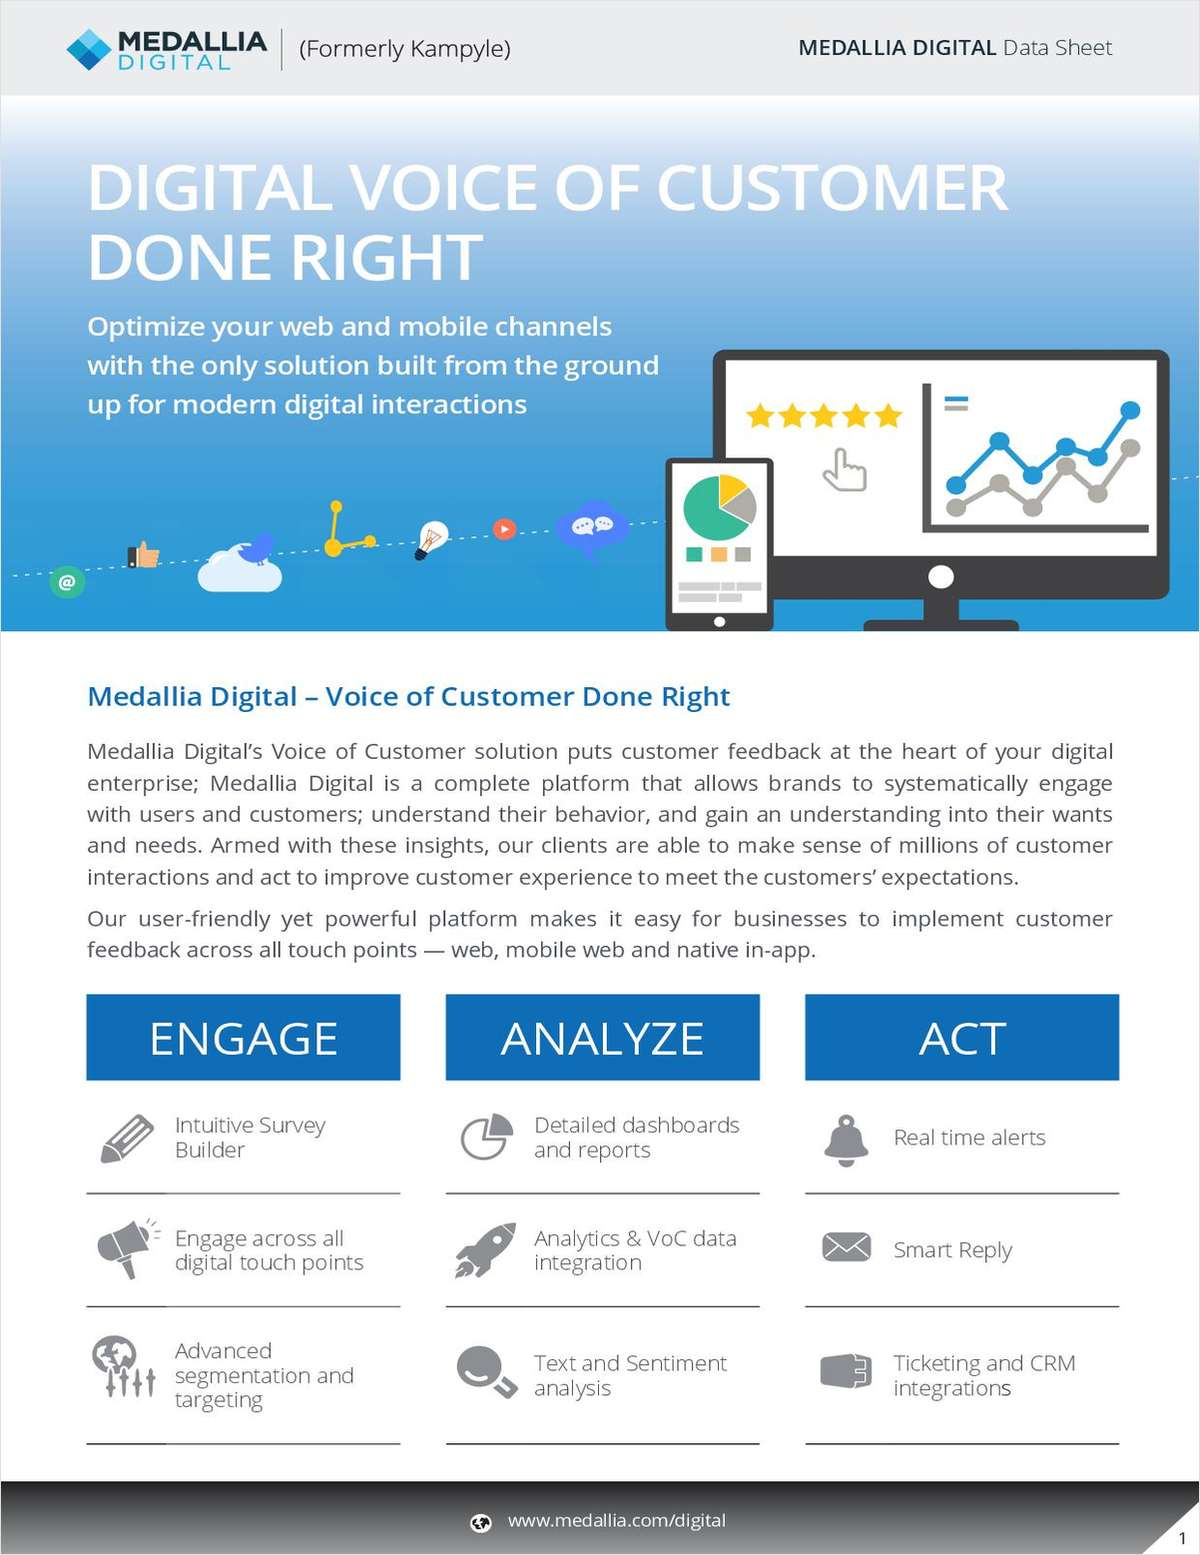 Launch a World-Class Digital Voice of Customer Program - Medallia